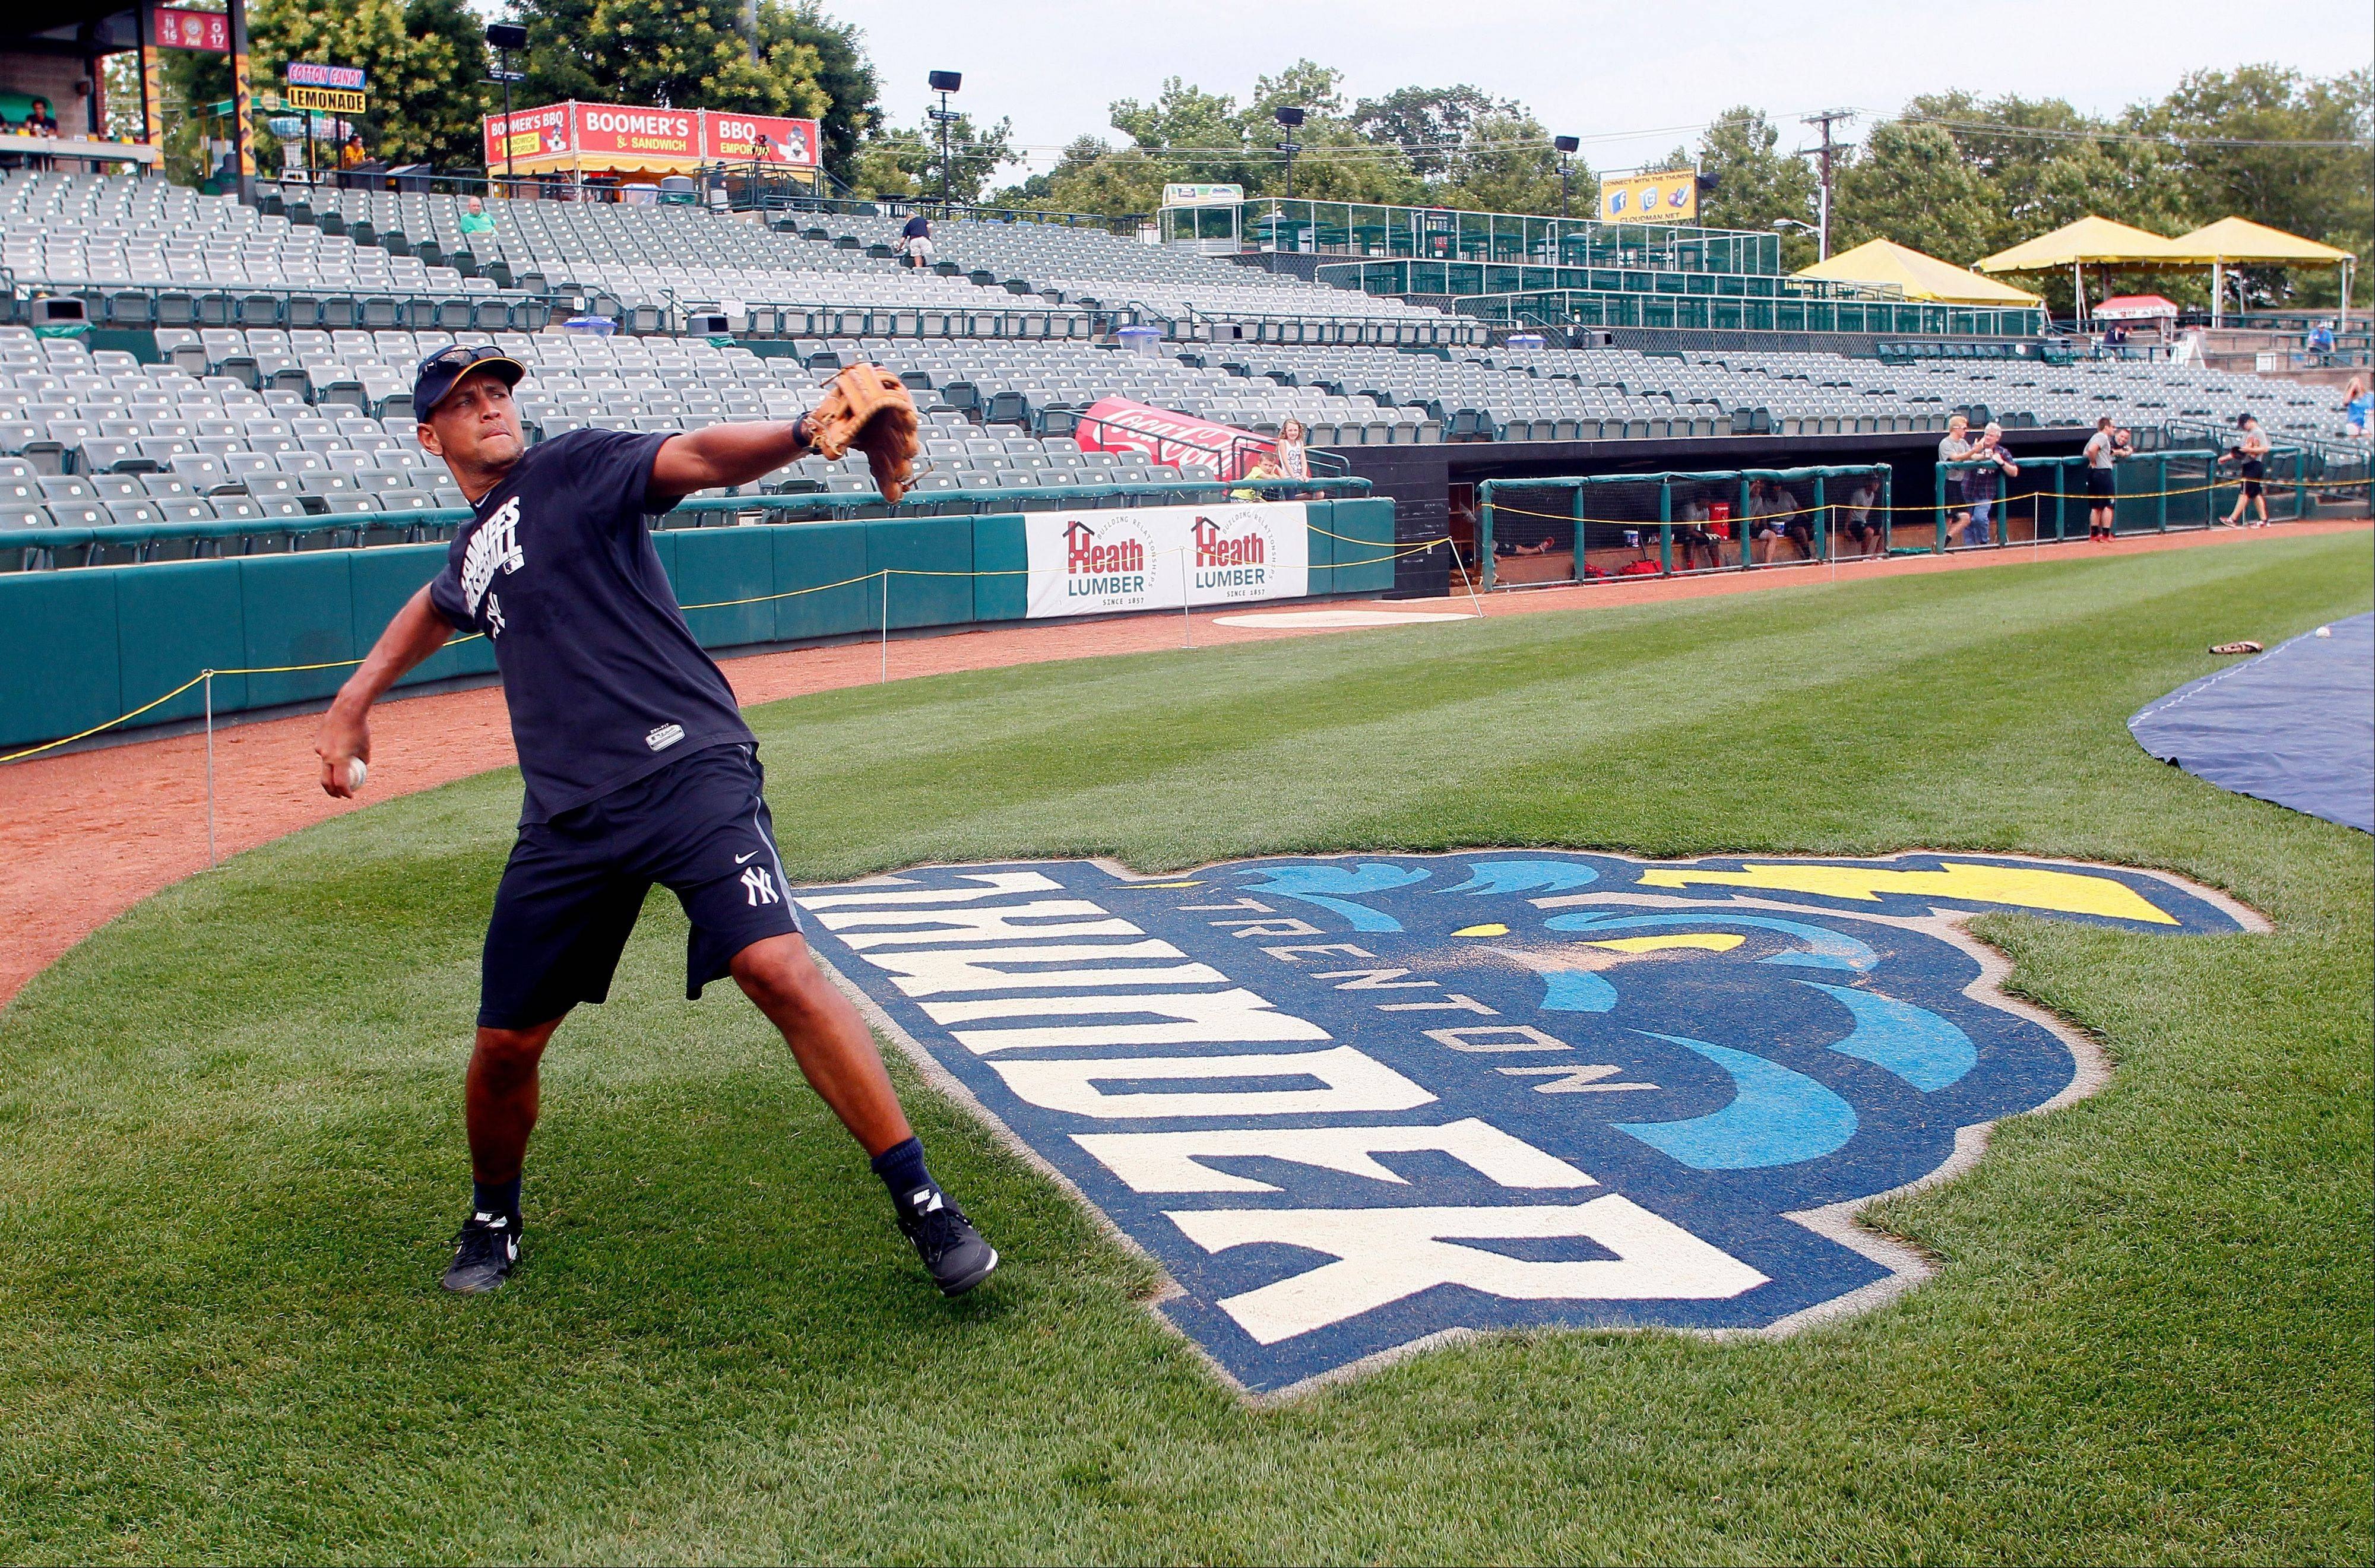 A-Rod rejoins Double-A Trenton for rehab games